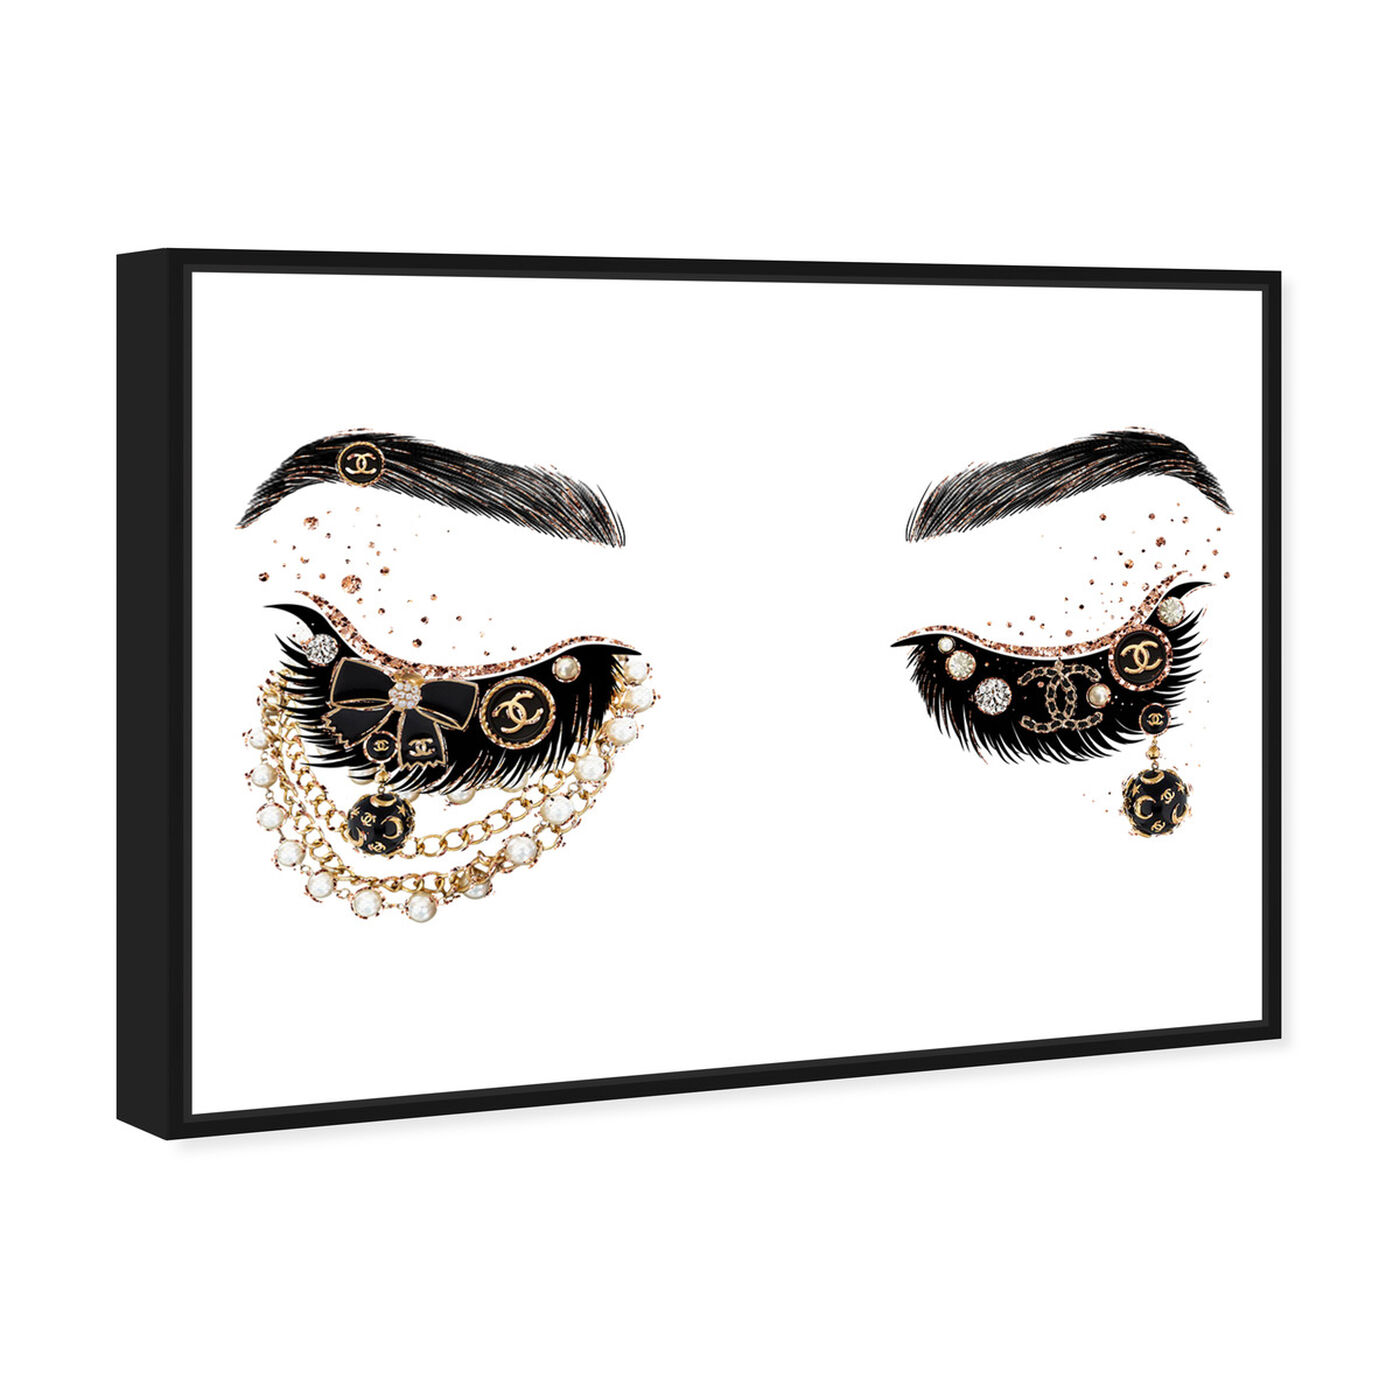 Angled view of Pearls and Coco Eyes featuring fashion and glam and makeup art.